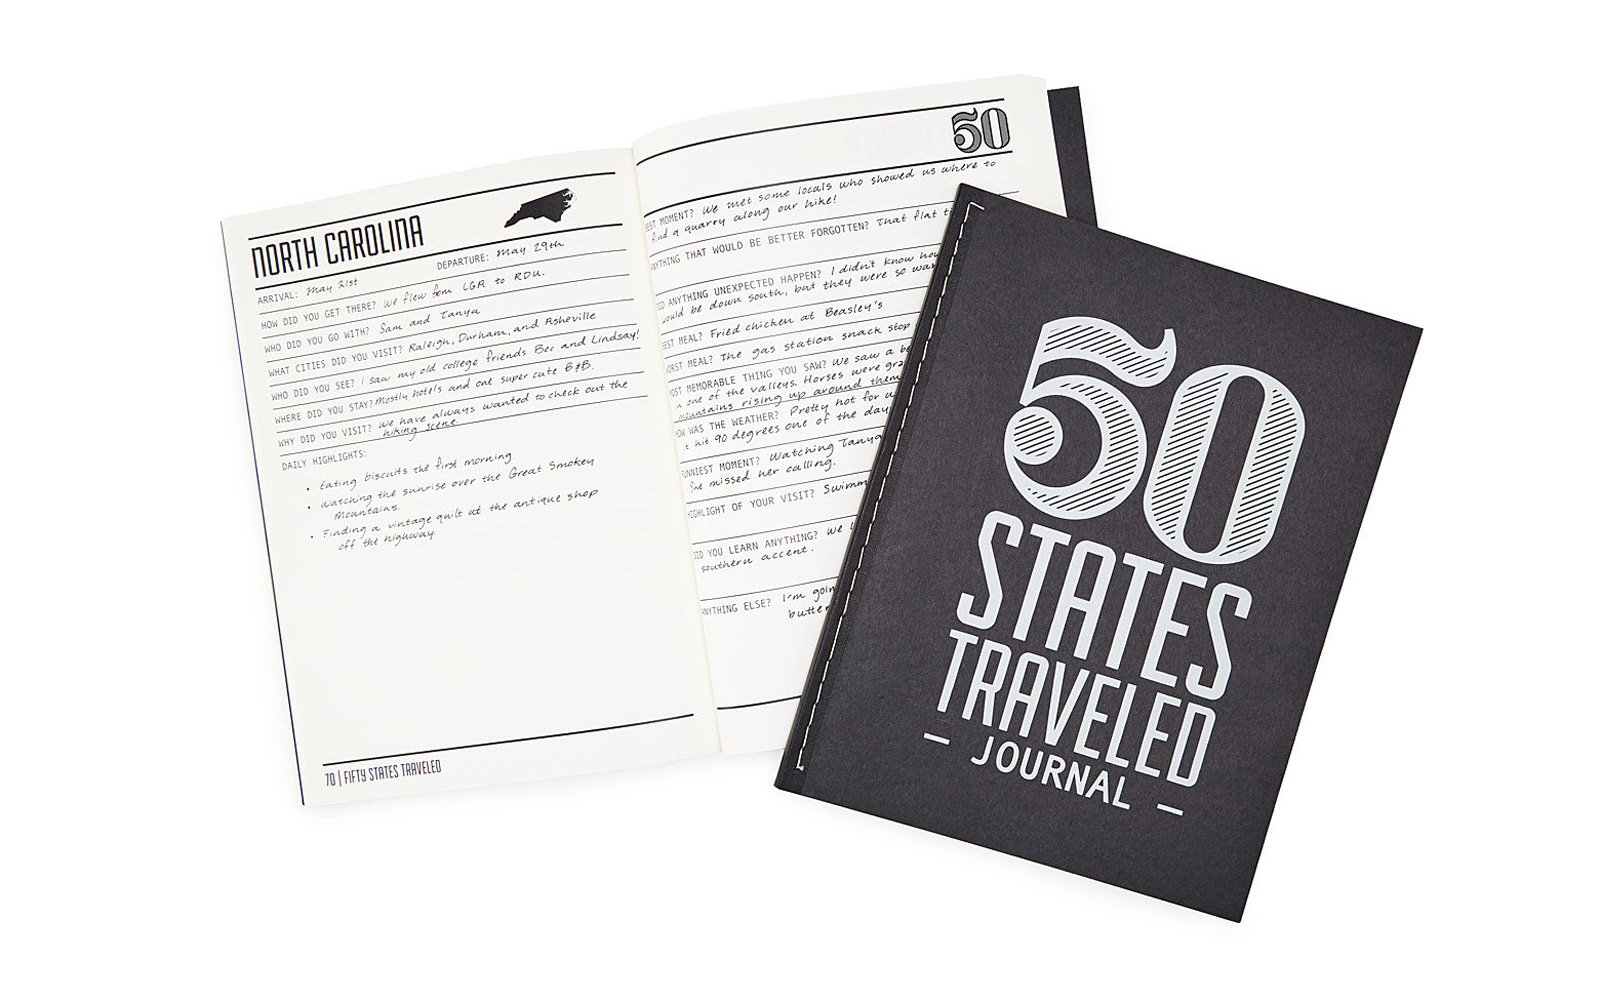 The 17 Best Travel Journals to Bring on Your Next Adventure